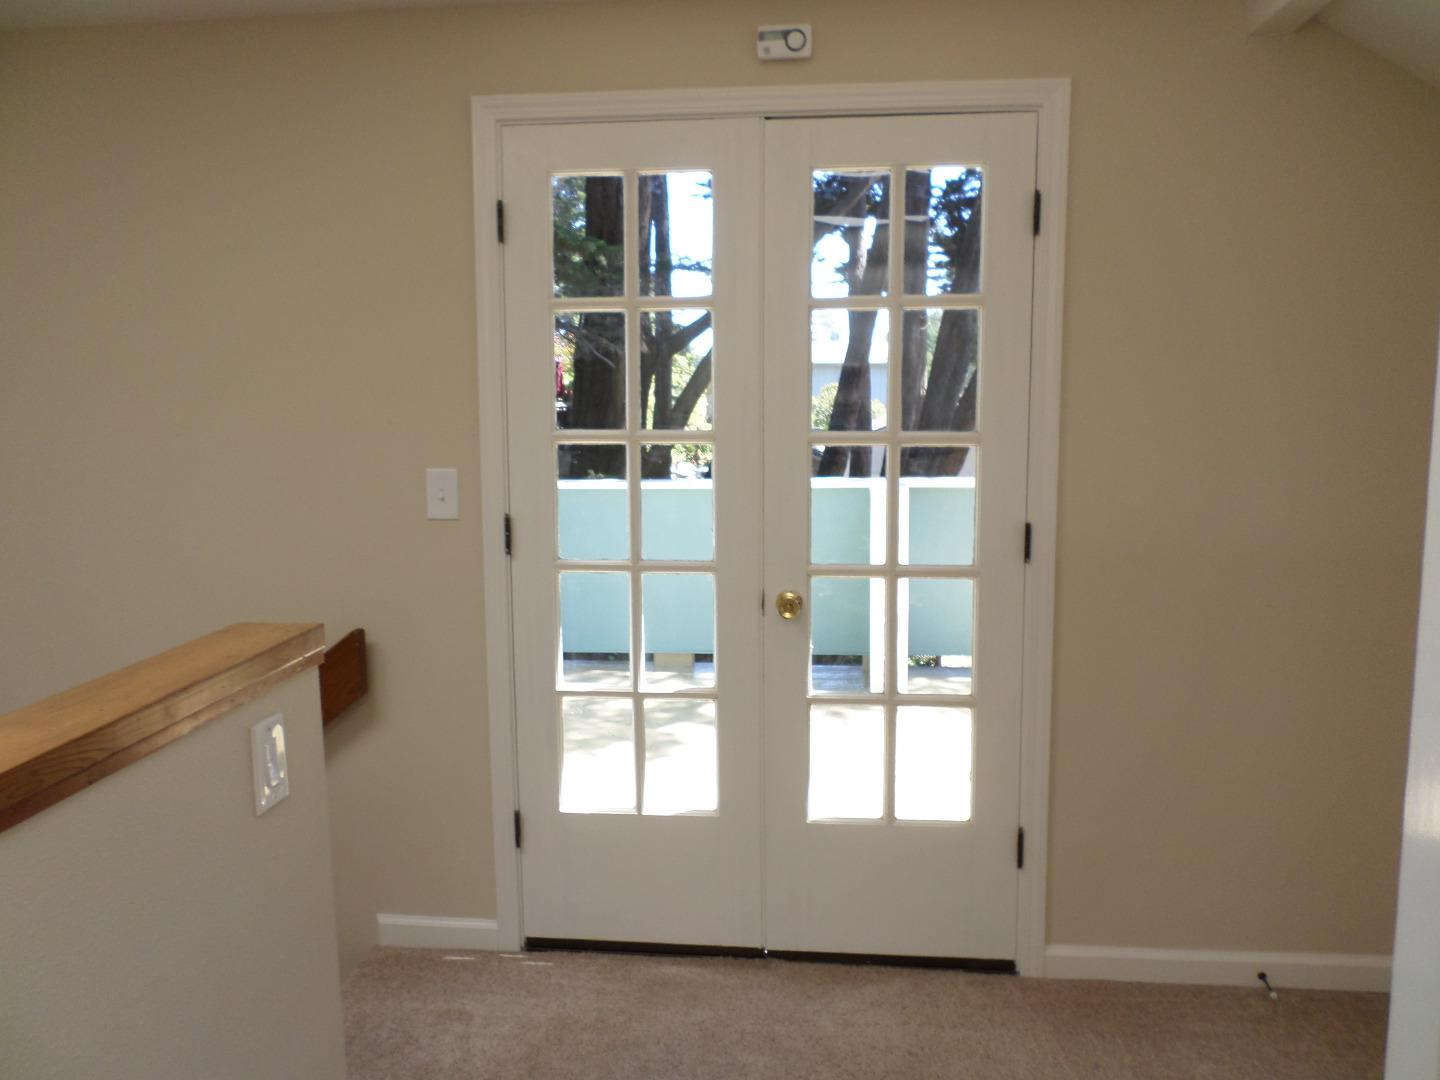 Additional photo for property listing at 306 Arthur Avenue  Aptos, California 95003 Estados Unidos